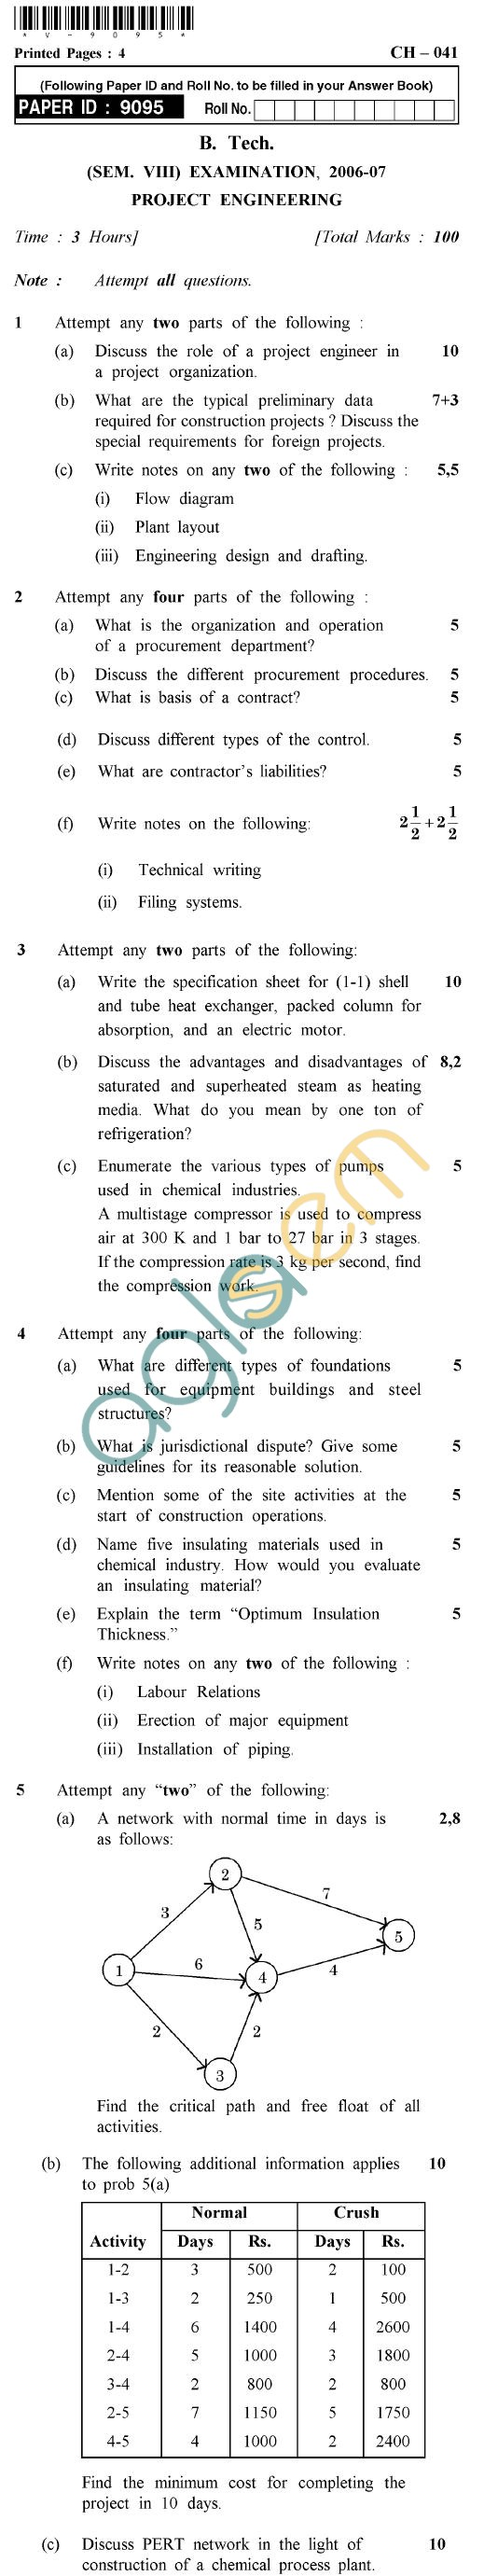 UPTU B.Tech Question Papers -CH-041 - Project Engineering